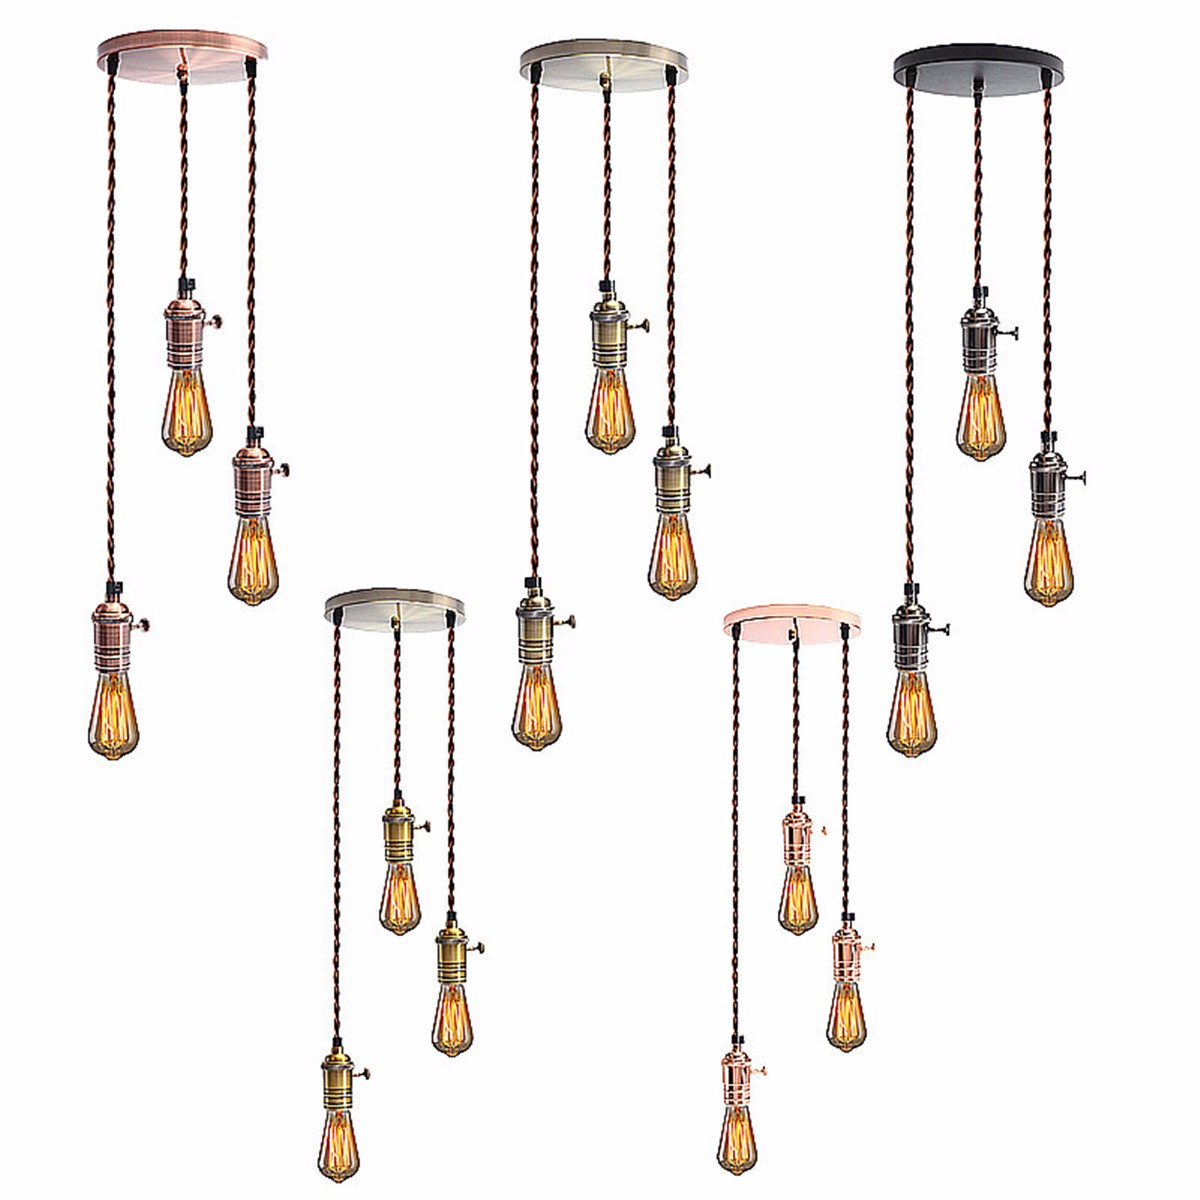 E27 Retro Vintage Industrial Loft Copper Pendant Ceiling Edison Light Lamp Base Holder Hanging Lampshade Socket With Switch rh loft vintage copper base edison led bulb iron shade ceiling hanging industrial pendant lamp light lighting e27 e26 110v 220v